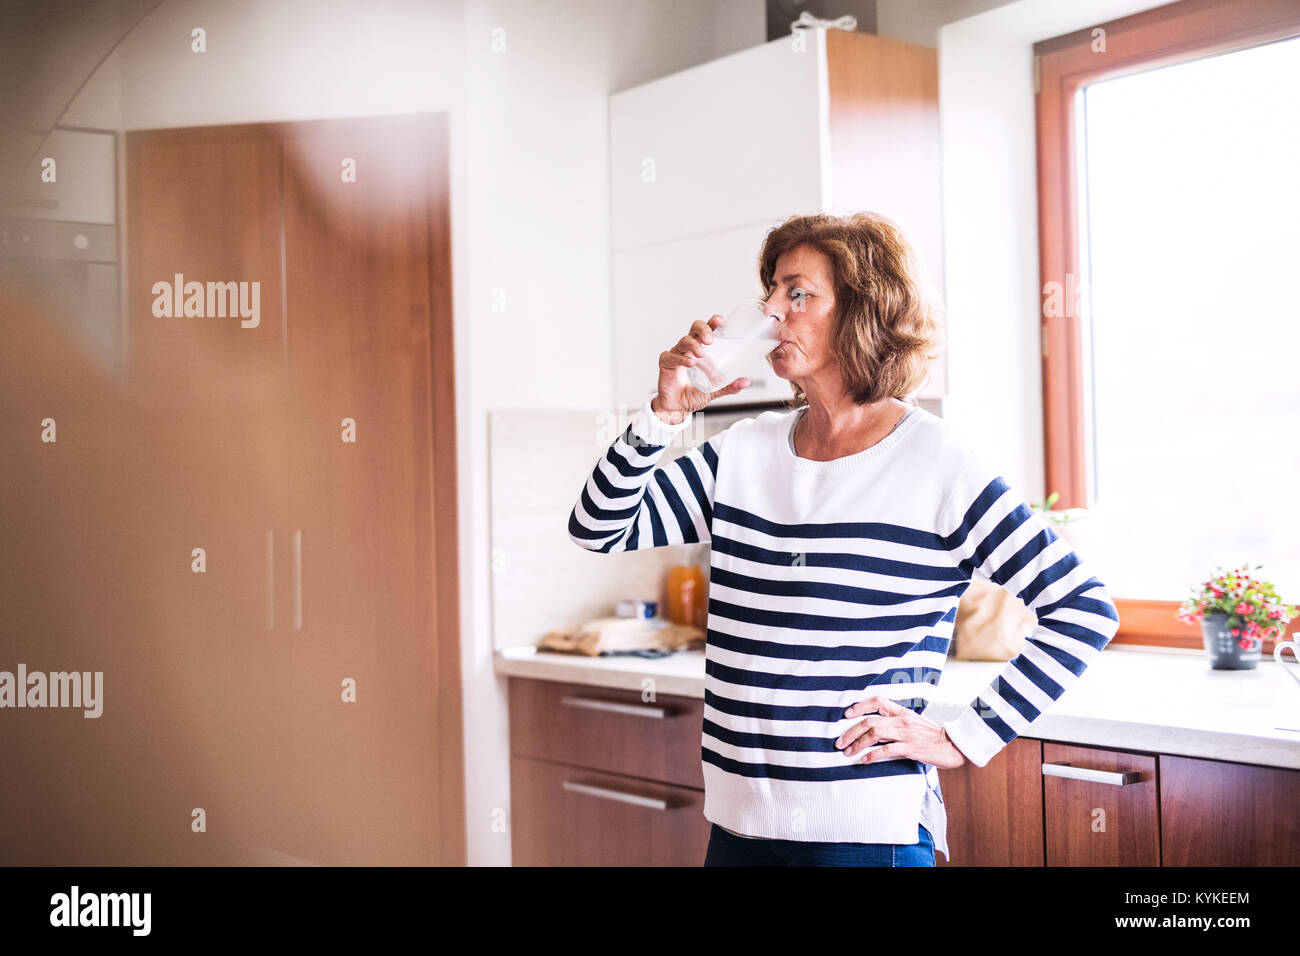 Senior woman drinking water in the kitchen. - Stock Image